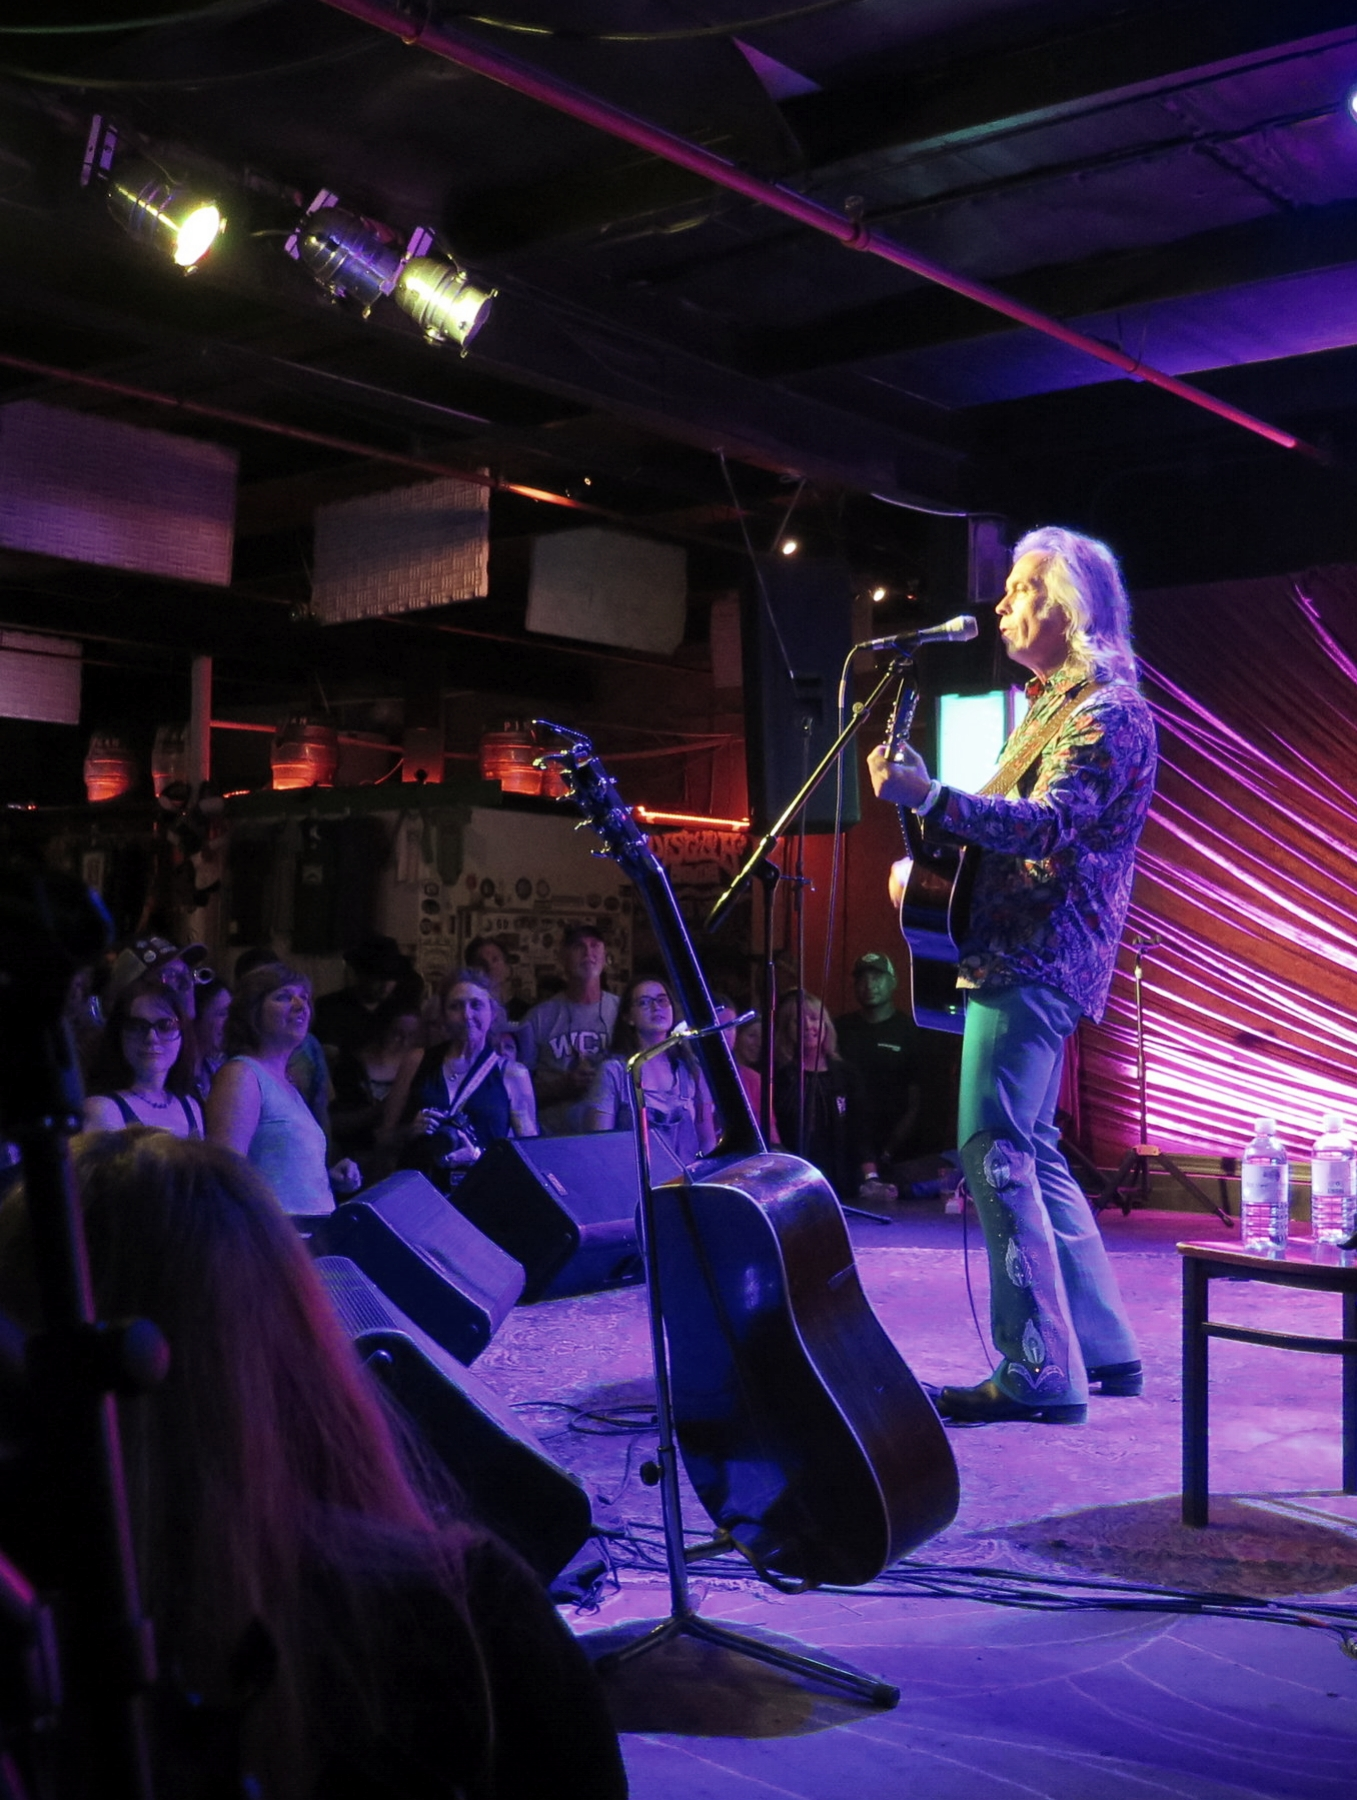 Jim Lauderdale is featured in our next podcast. He is pictured here playing at Pisgah Brewing Company in Black Mountain, NC for Jam In The Trees on 8-26-17.